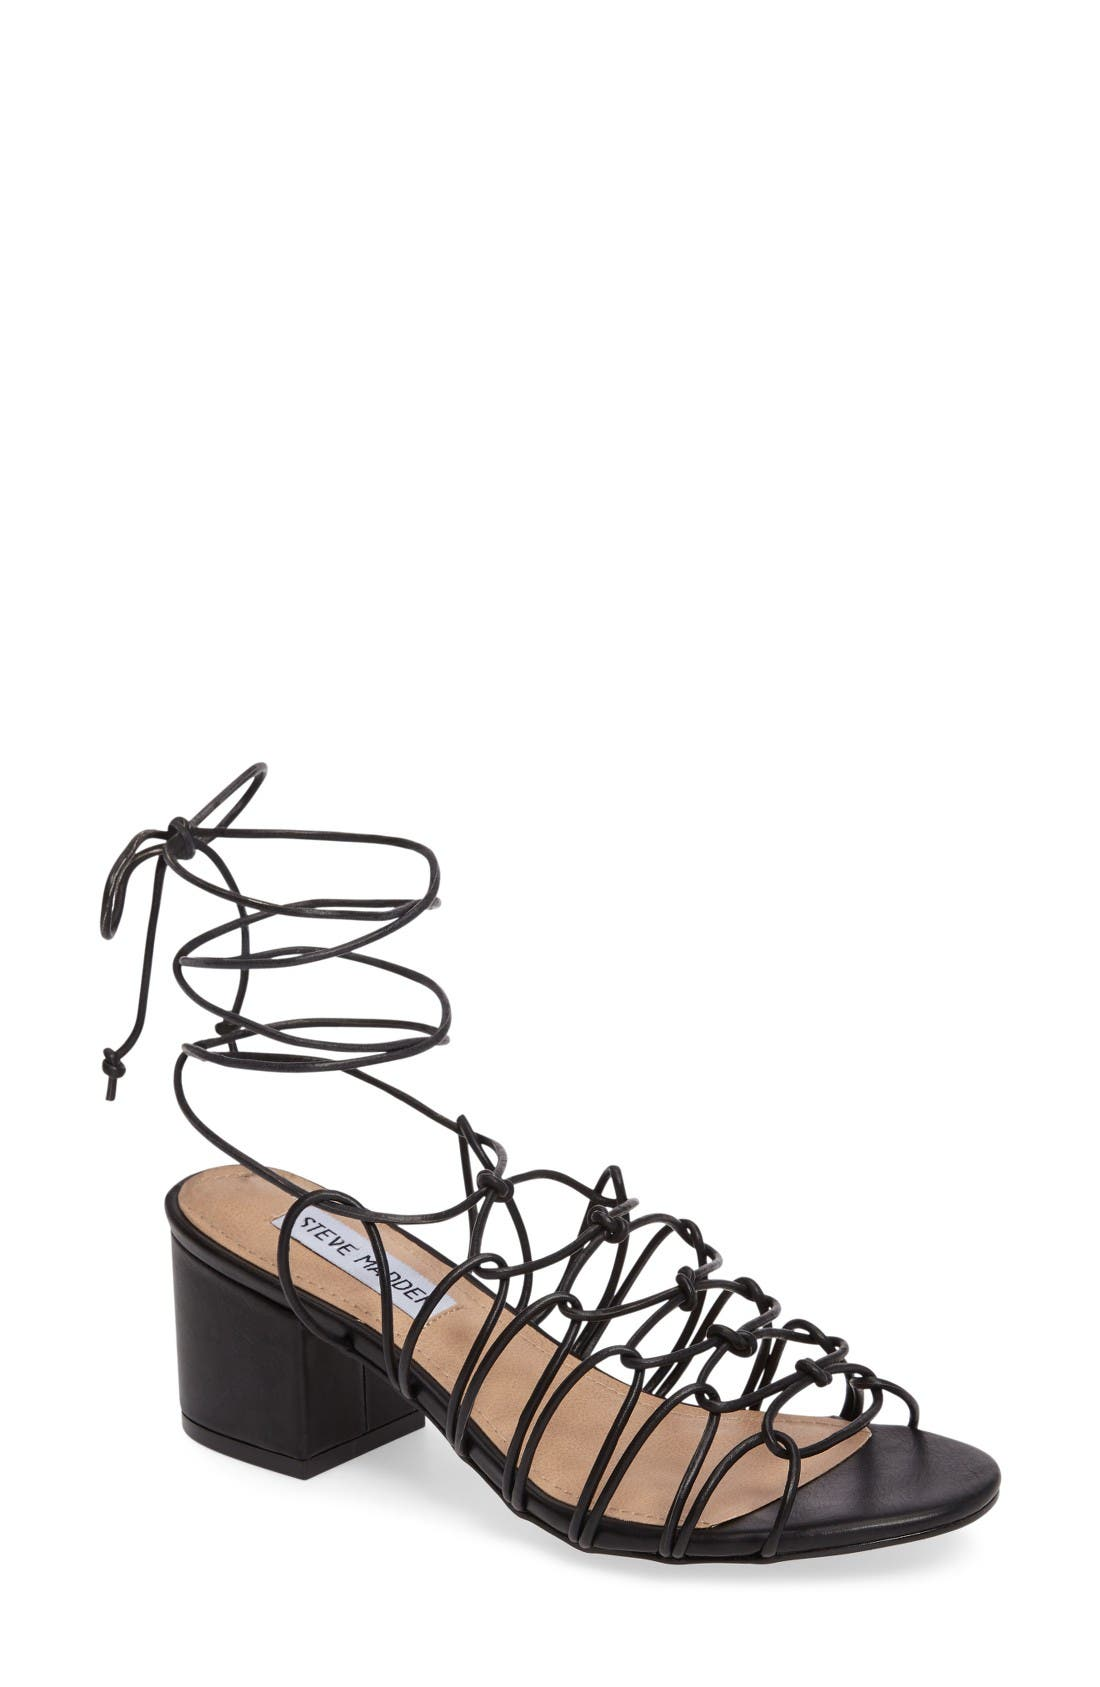 Alternate Image 1 Selected - Steve Madden Illie Knotted Lace Sandal (Women)